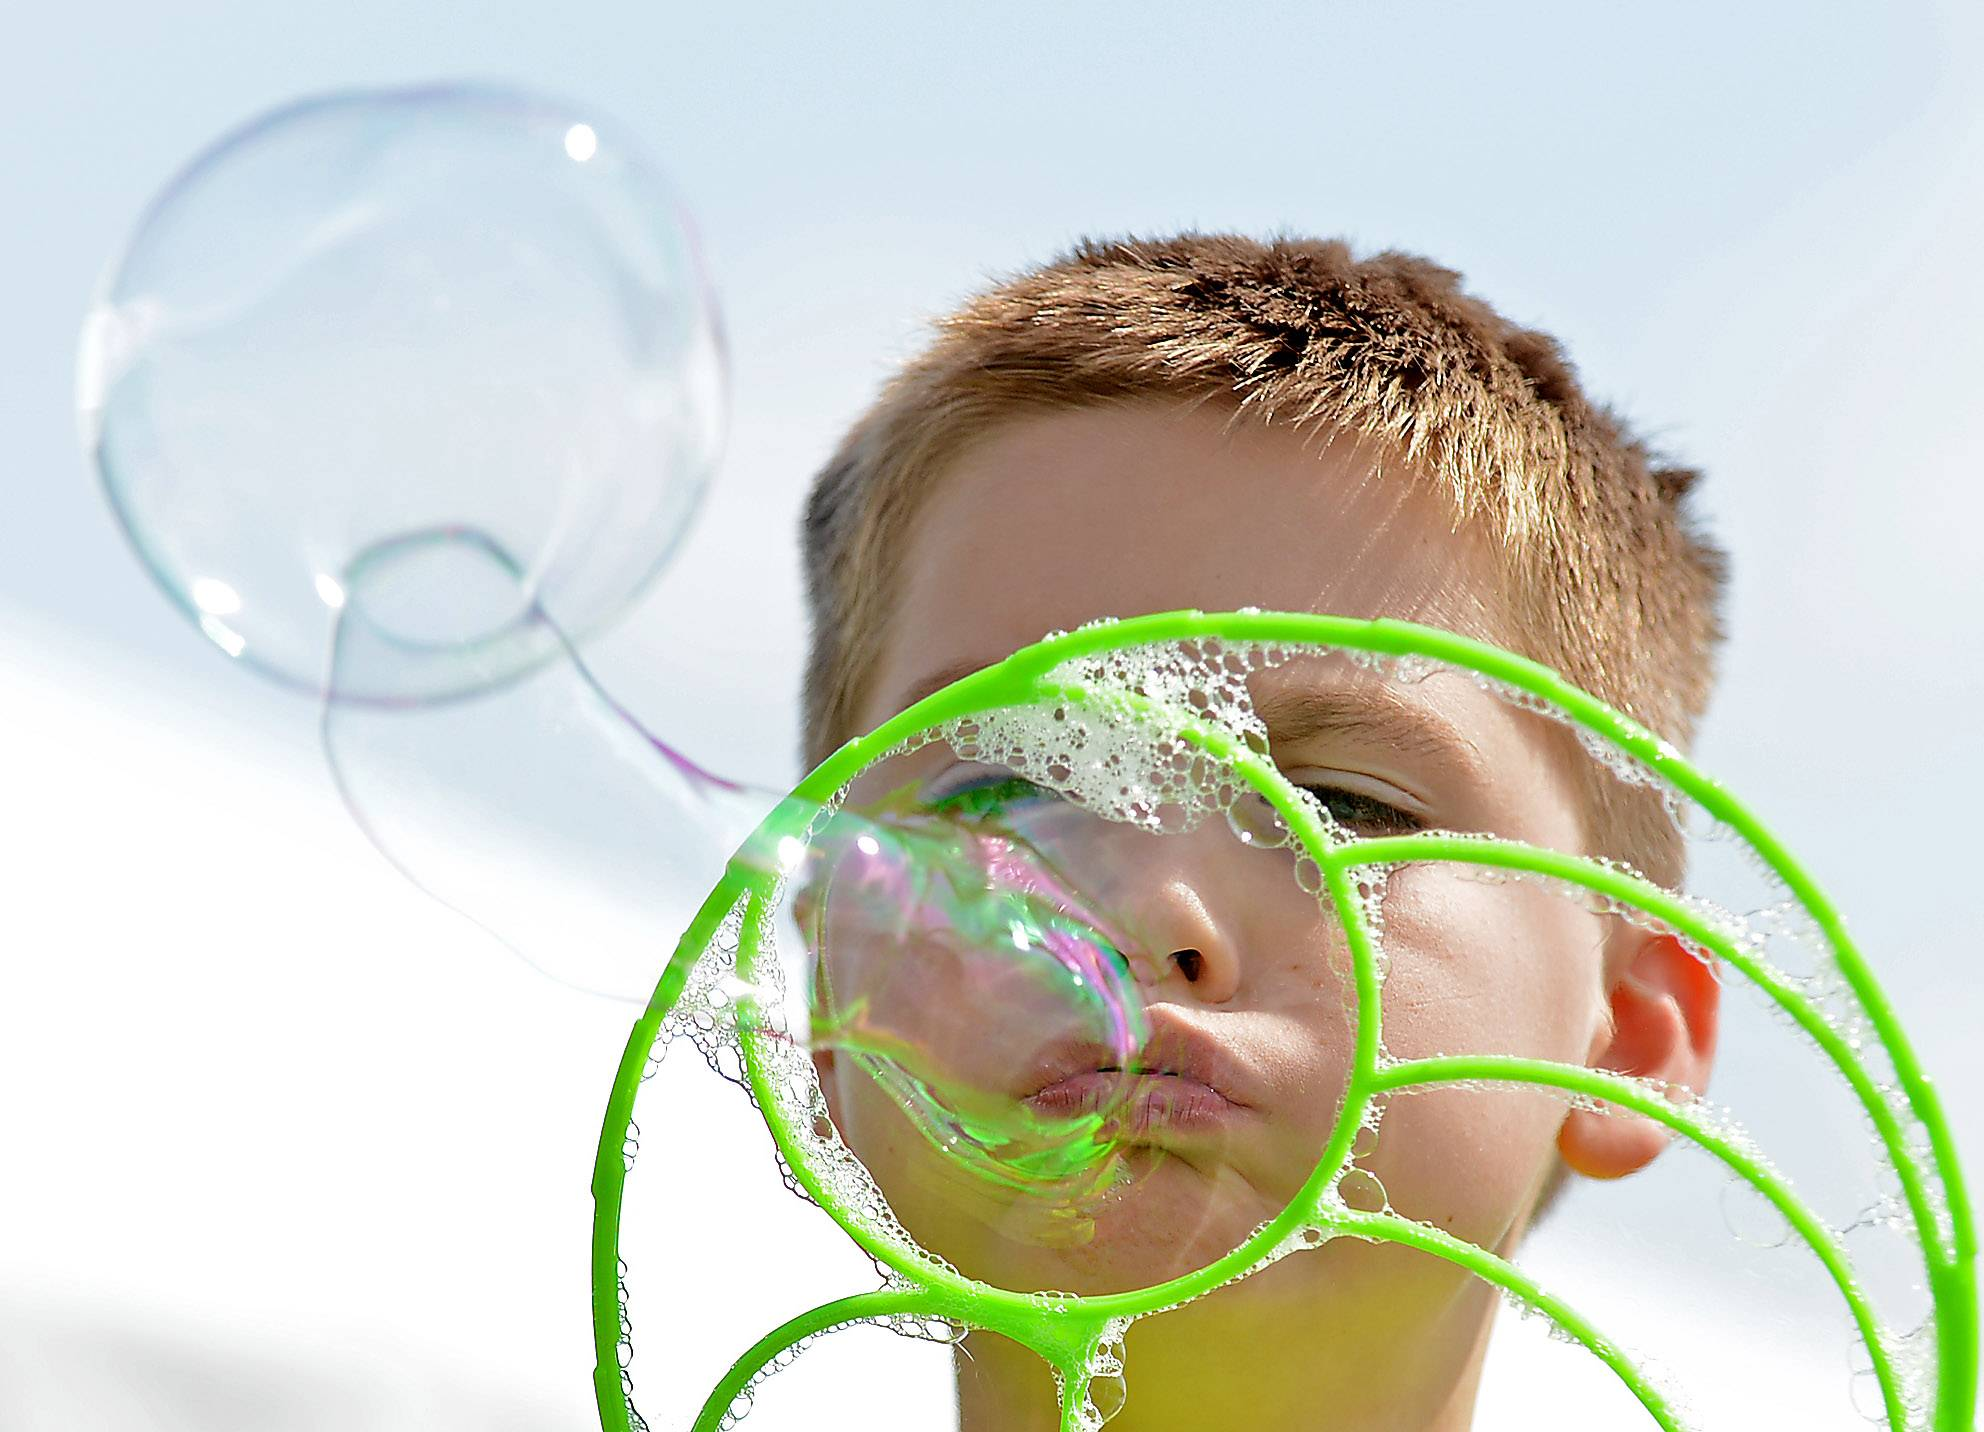 John Lelonek, 8, of Lake in the Hills blows bubbles at the Kids' Korner at a previous Summer Sunset Festival.